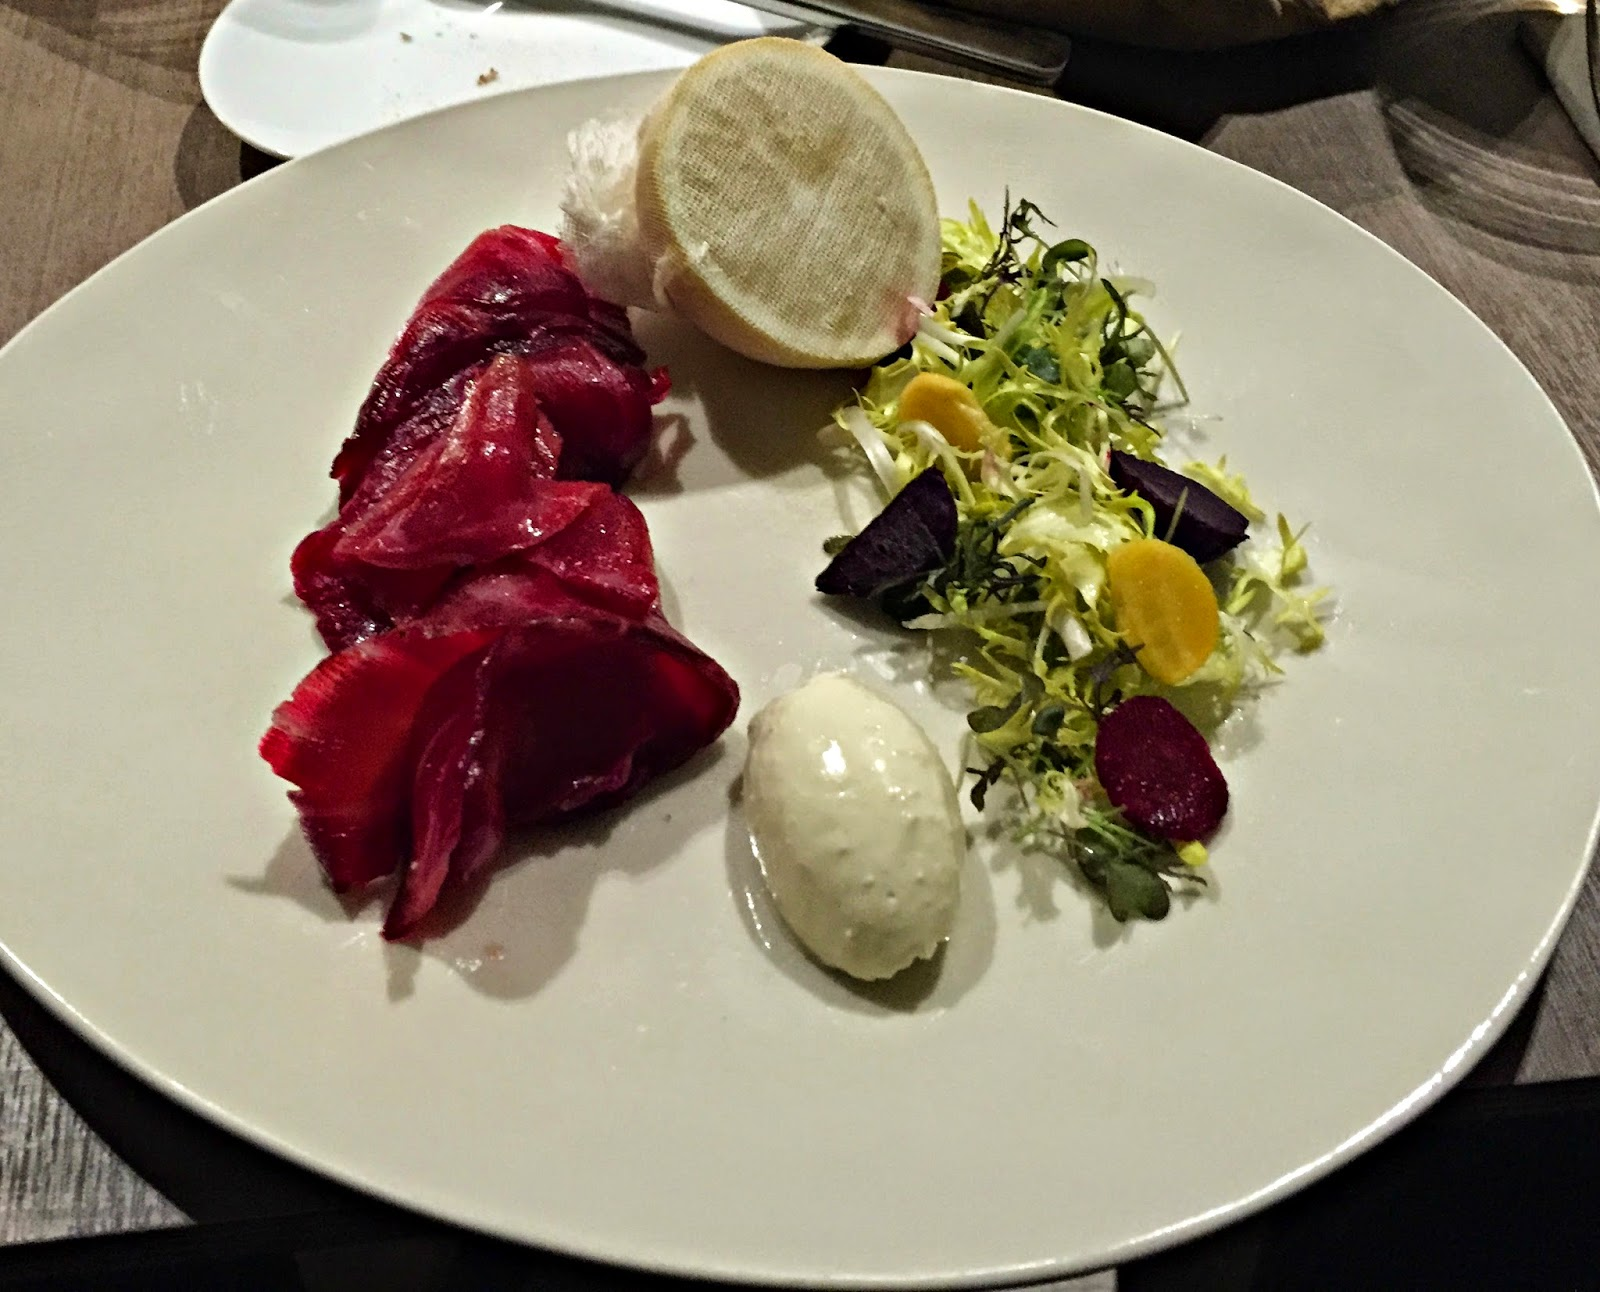 Beetroot Cured Salmon Skygarden